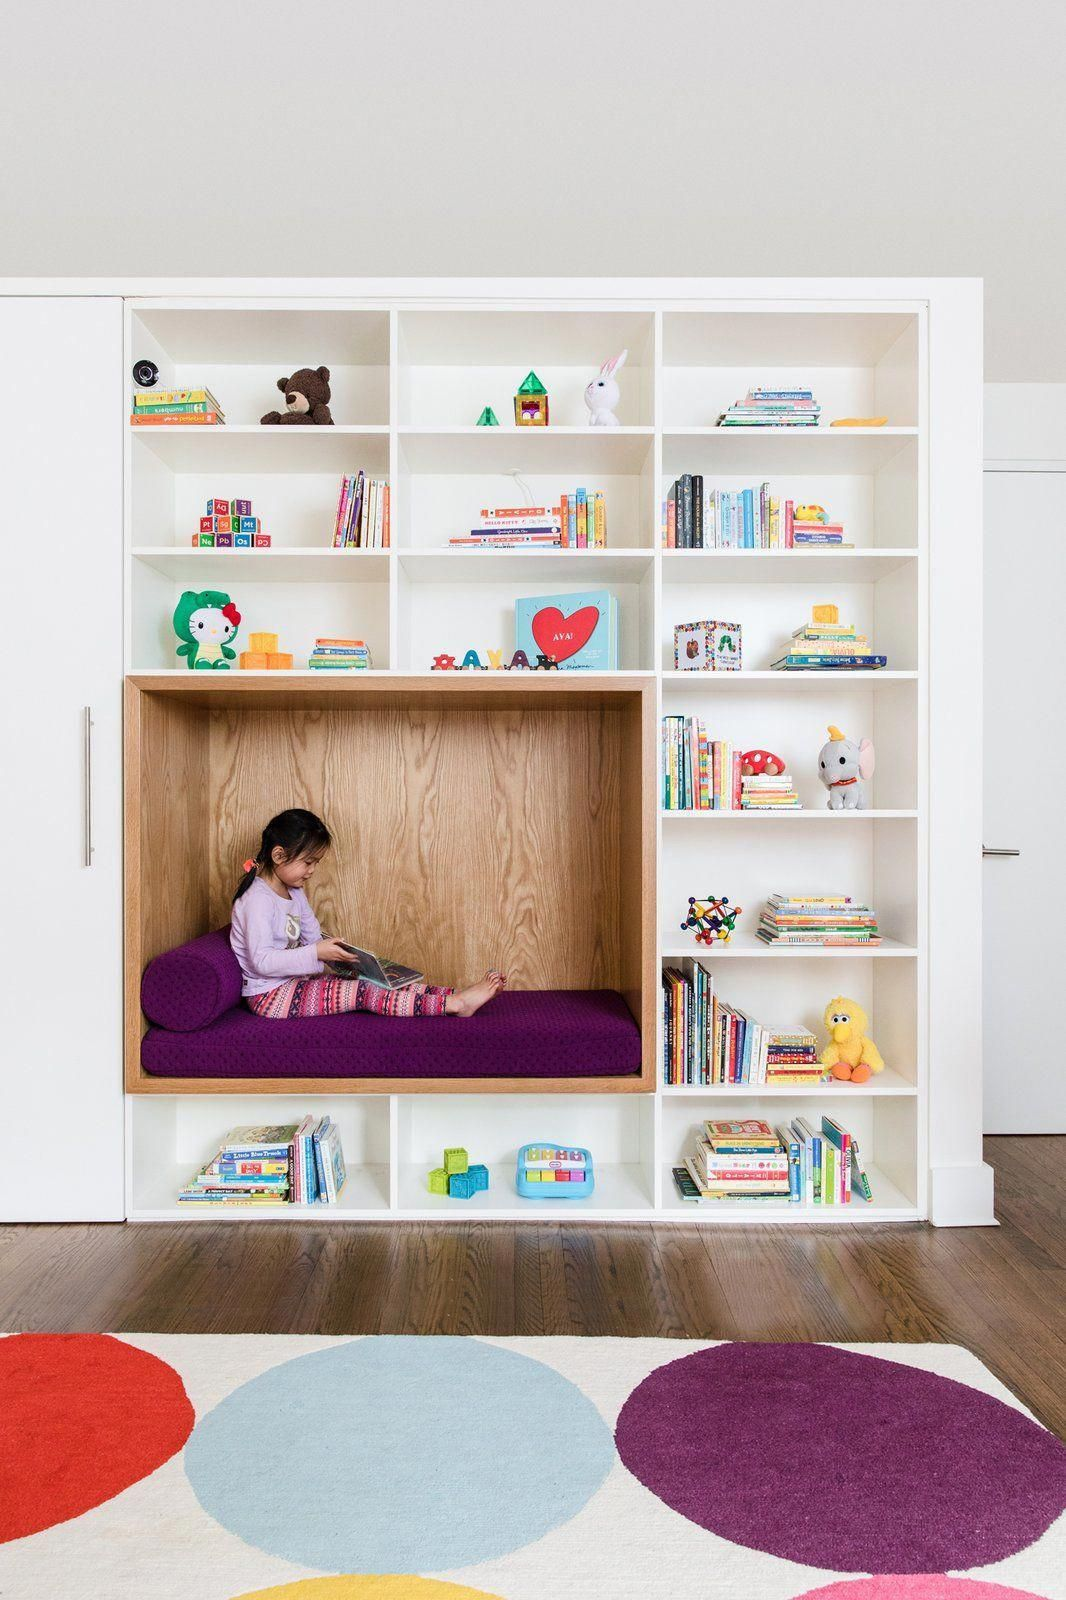 Kids Room, Shelves, Bookcase, Playroom Room Type, Bench, Toddler Age